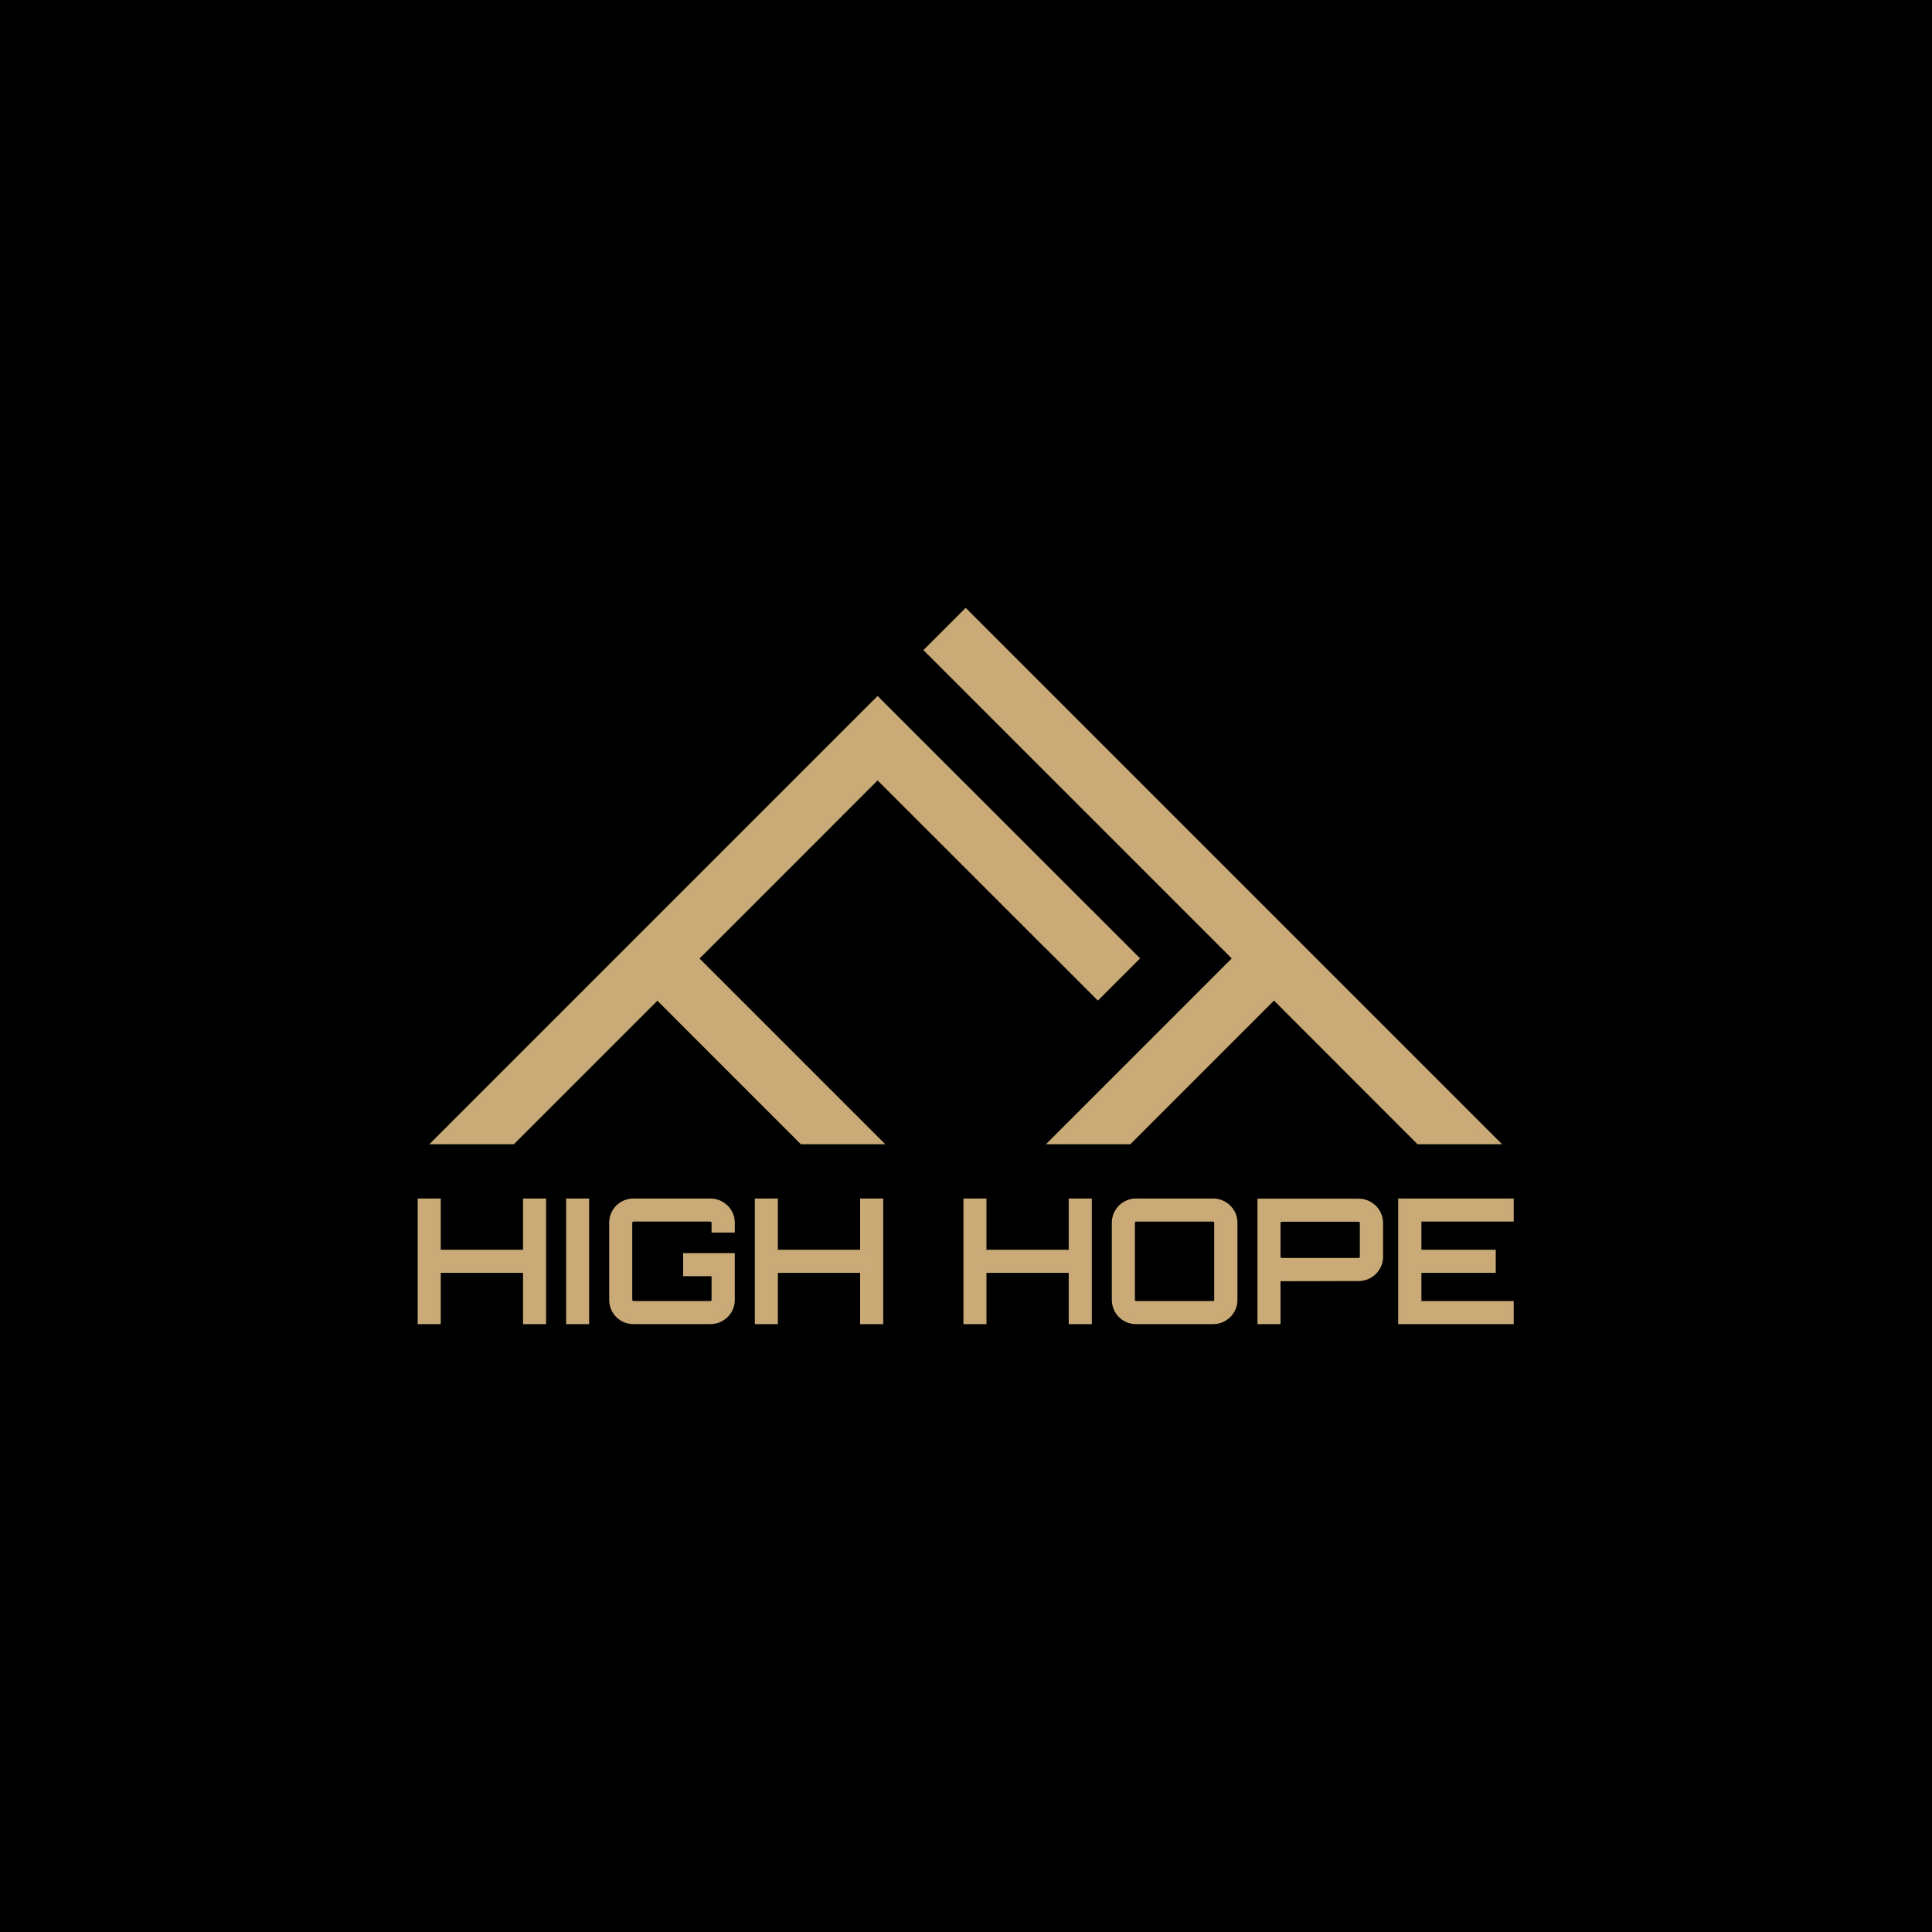 Ny LOGO för High Hope Event AB